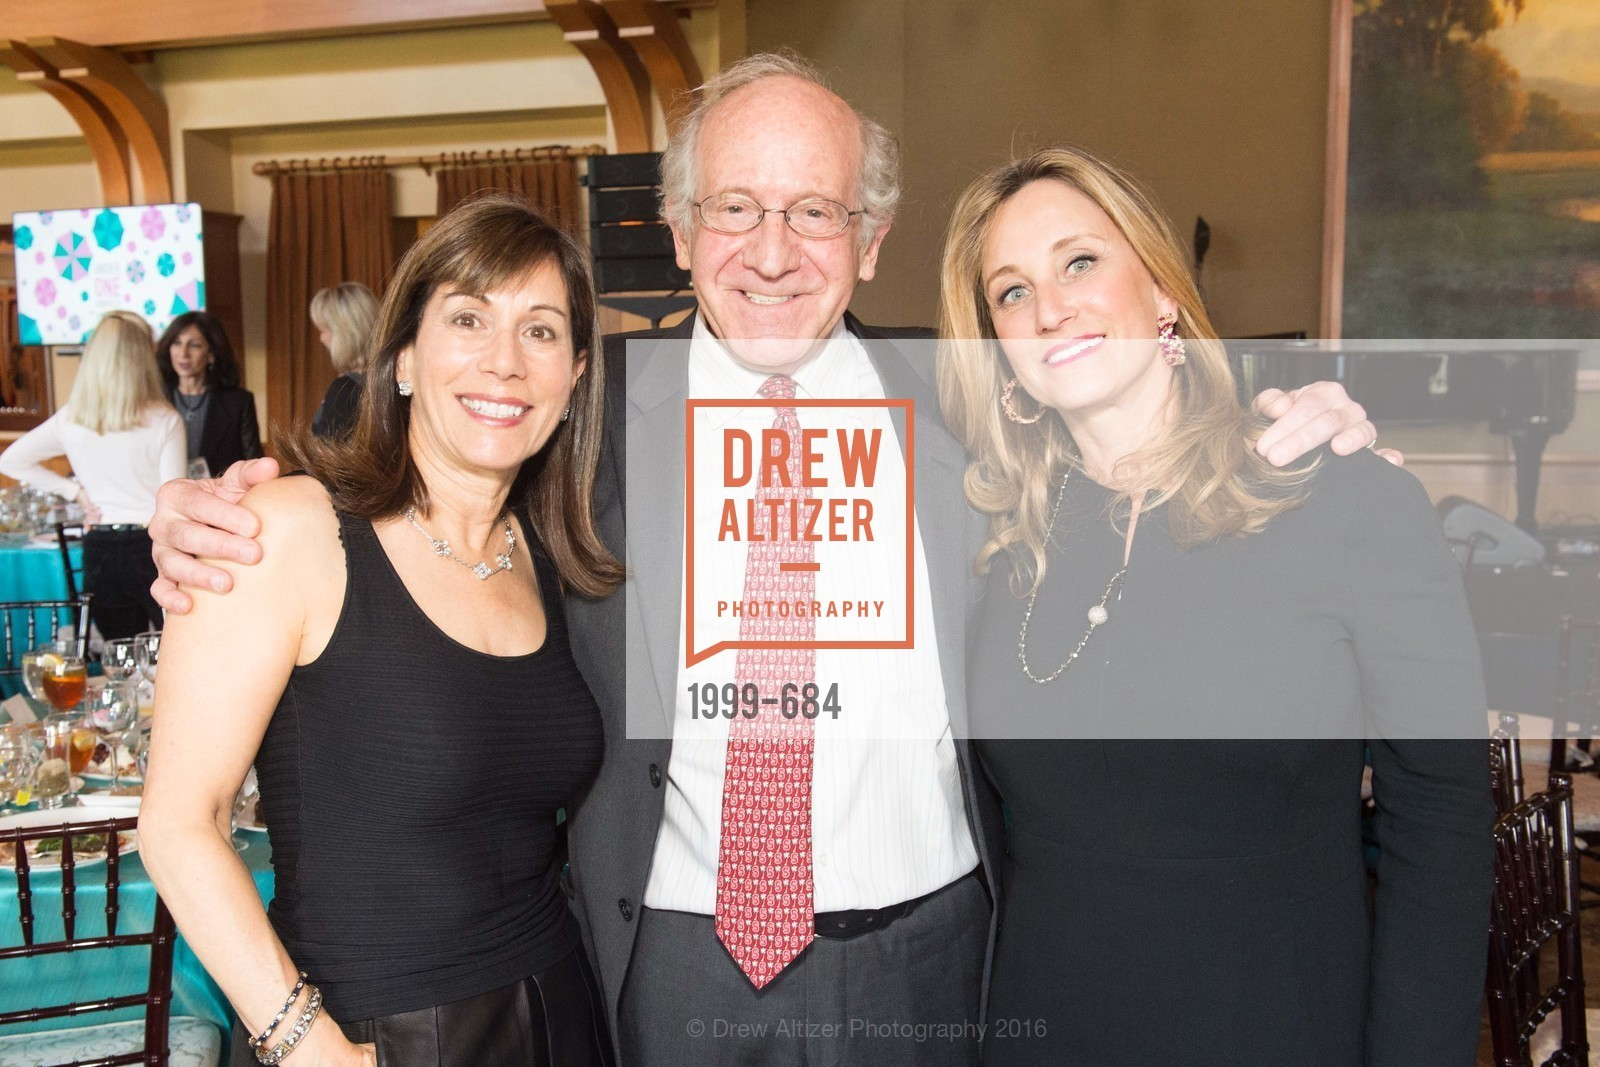 Lisa Schatz, Jonathan Berek, Dianne Taube, Under One Umbrella, Sharon Heights Golf and Country Club, January 13th, 2016,Drew Altizer, Drew Altizer Photography, full-service agency, private events, San Francisco photographer, photographer california